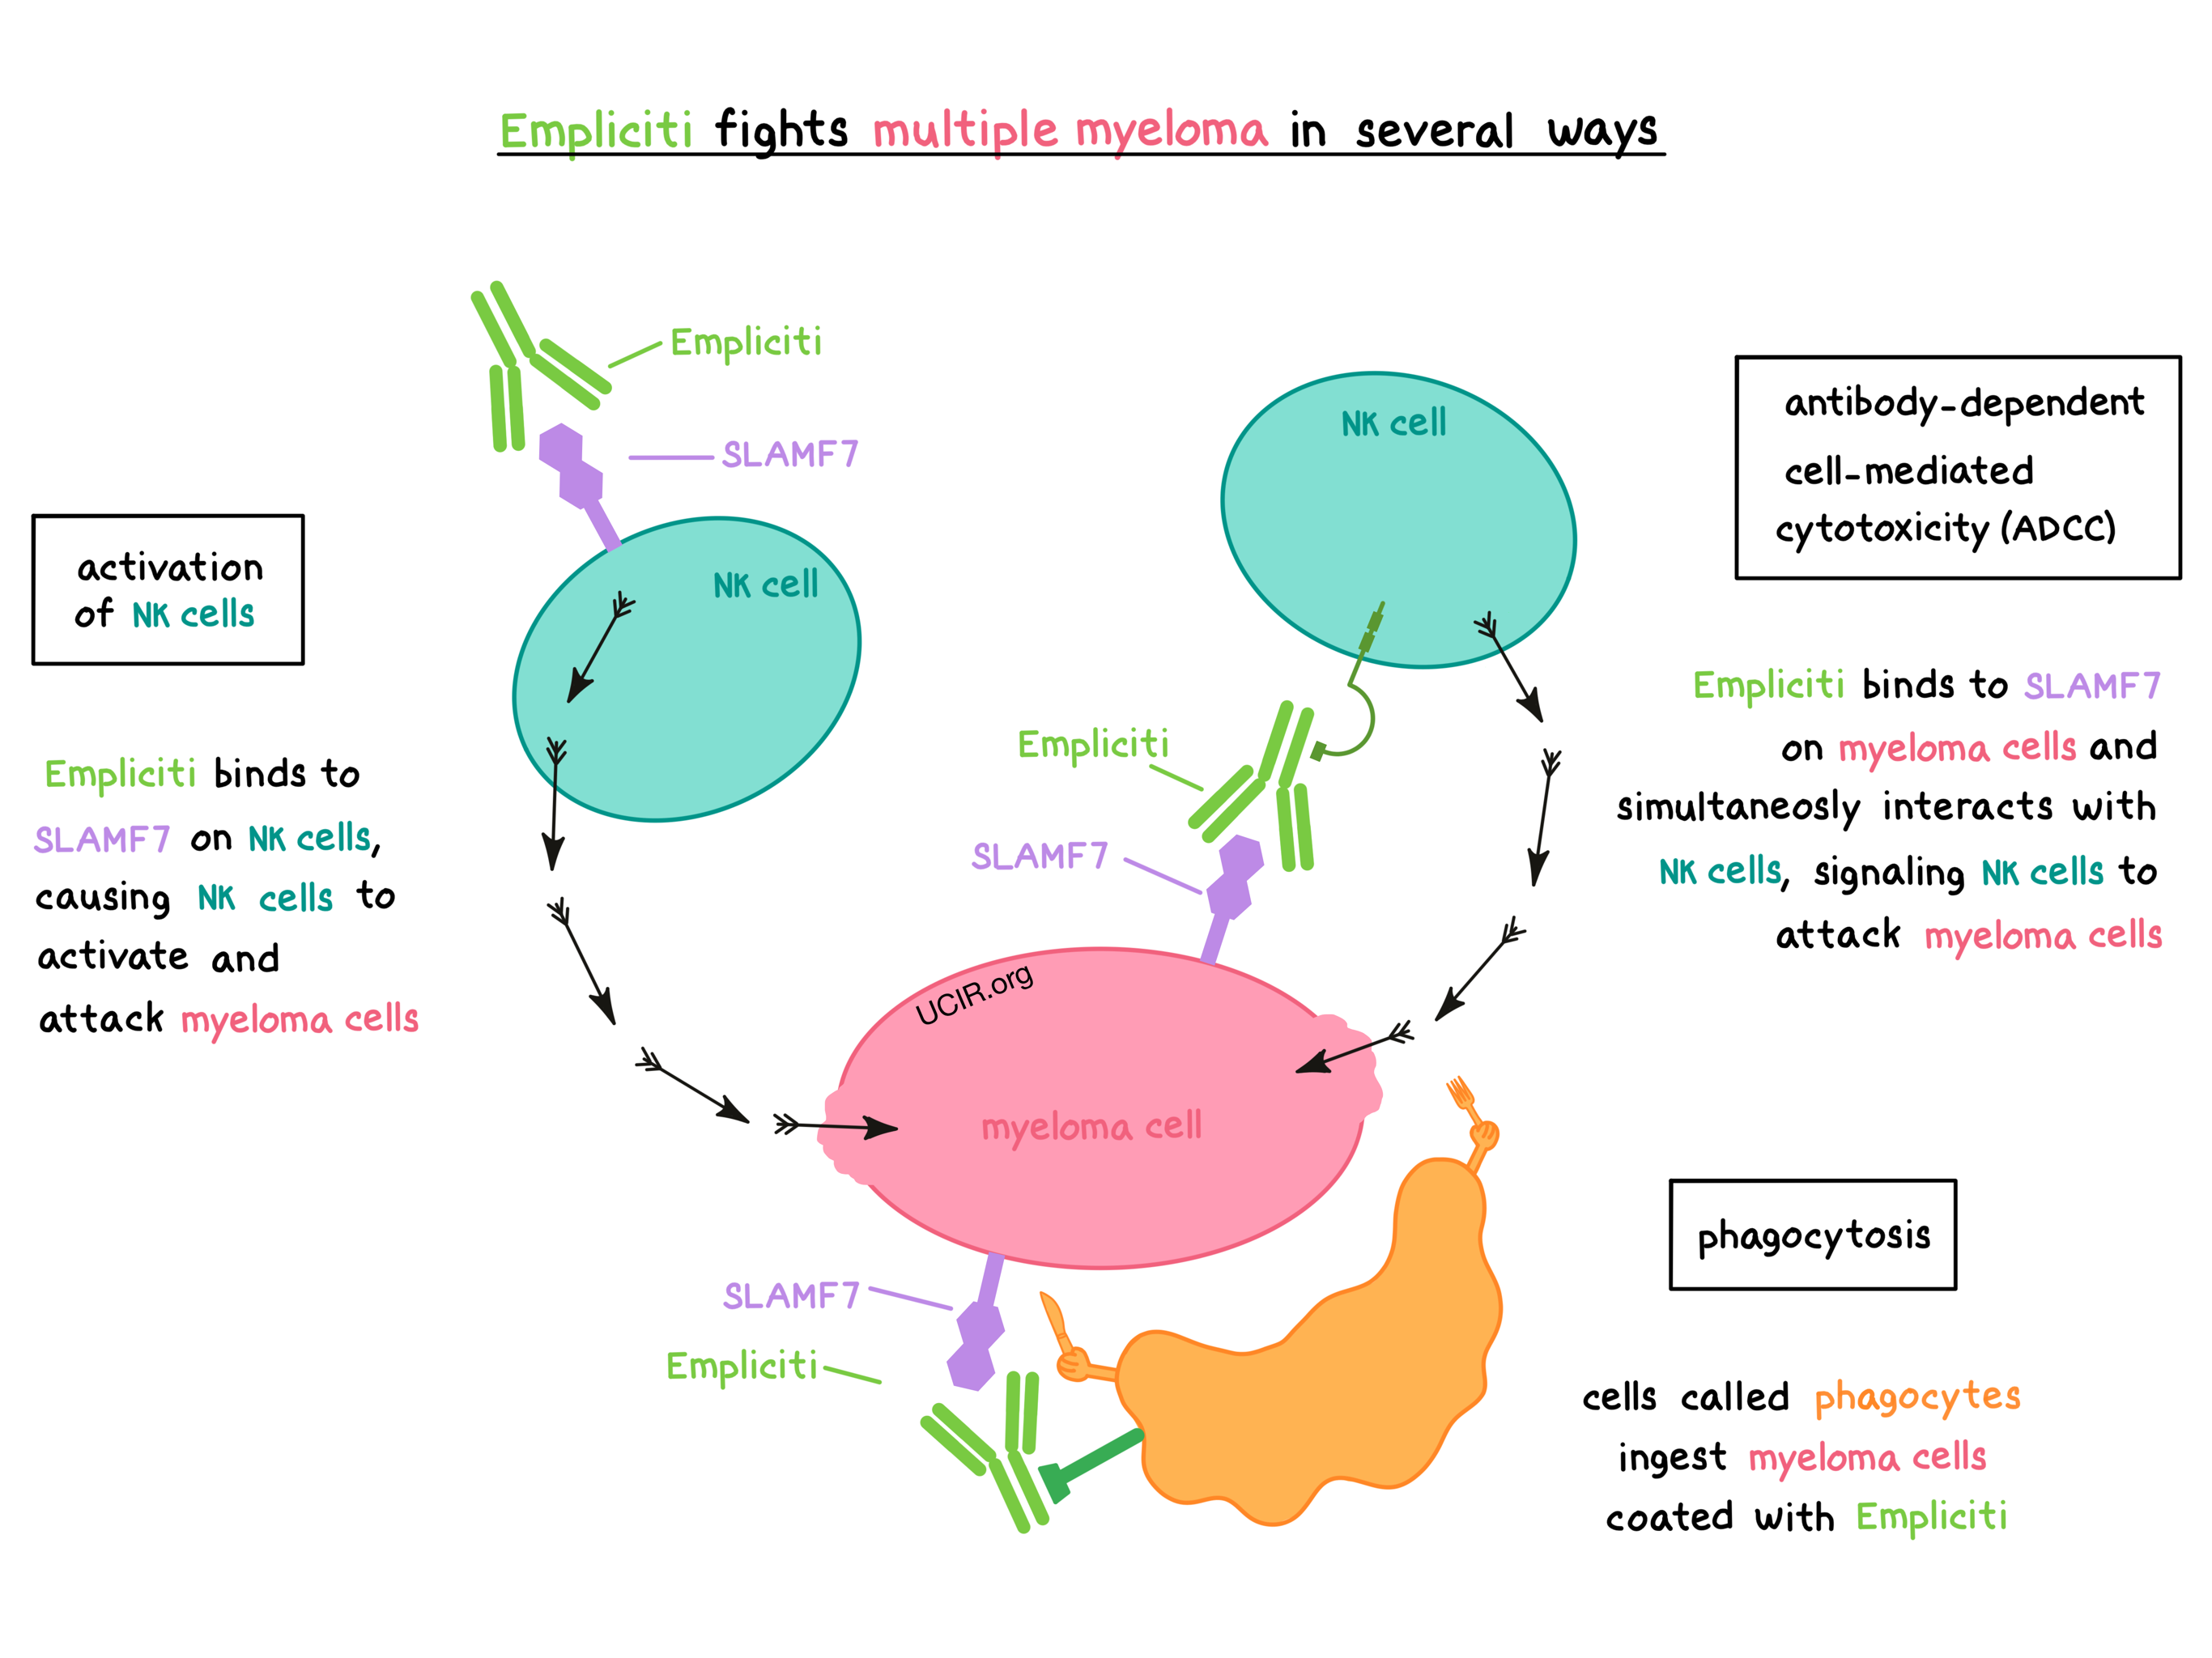 Illustration showing how Empliciti works